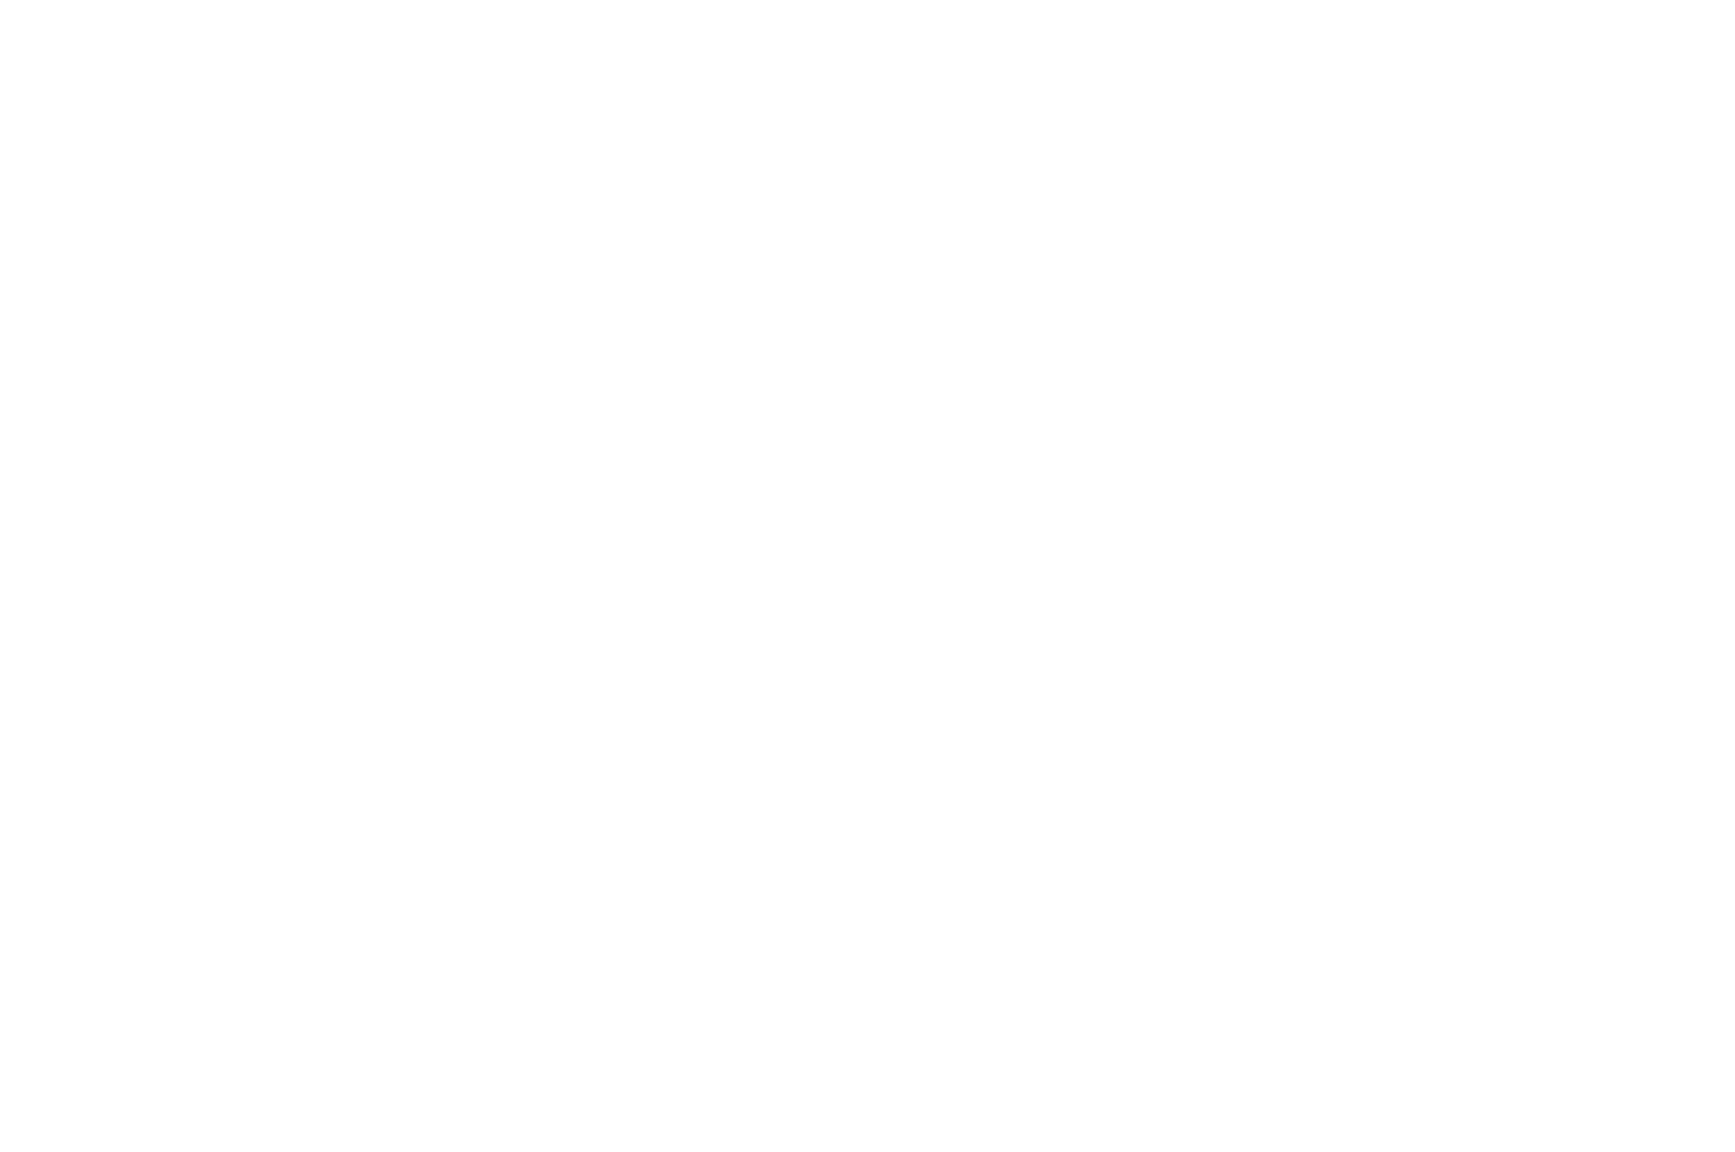 BEST DIRECTOR NOMINATION - TOP INDIE FILM AWARDS - 2018.png